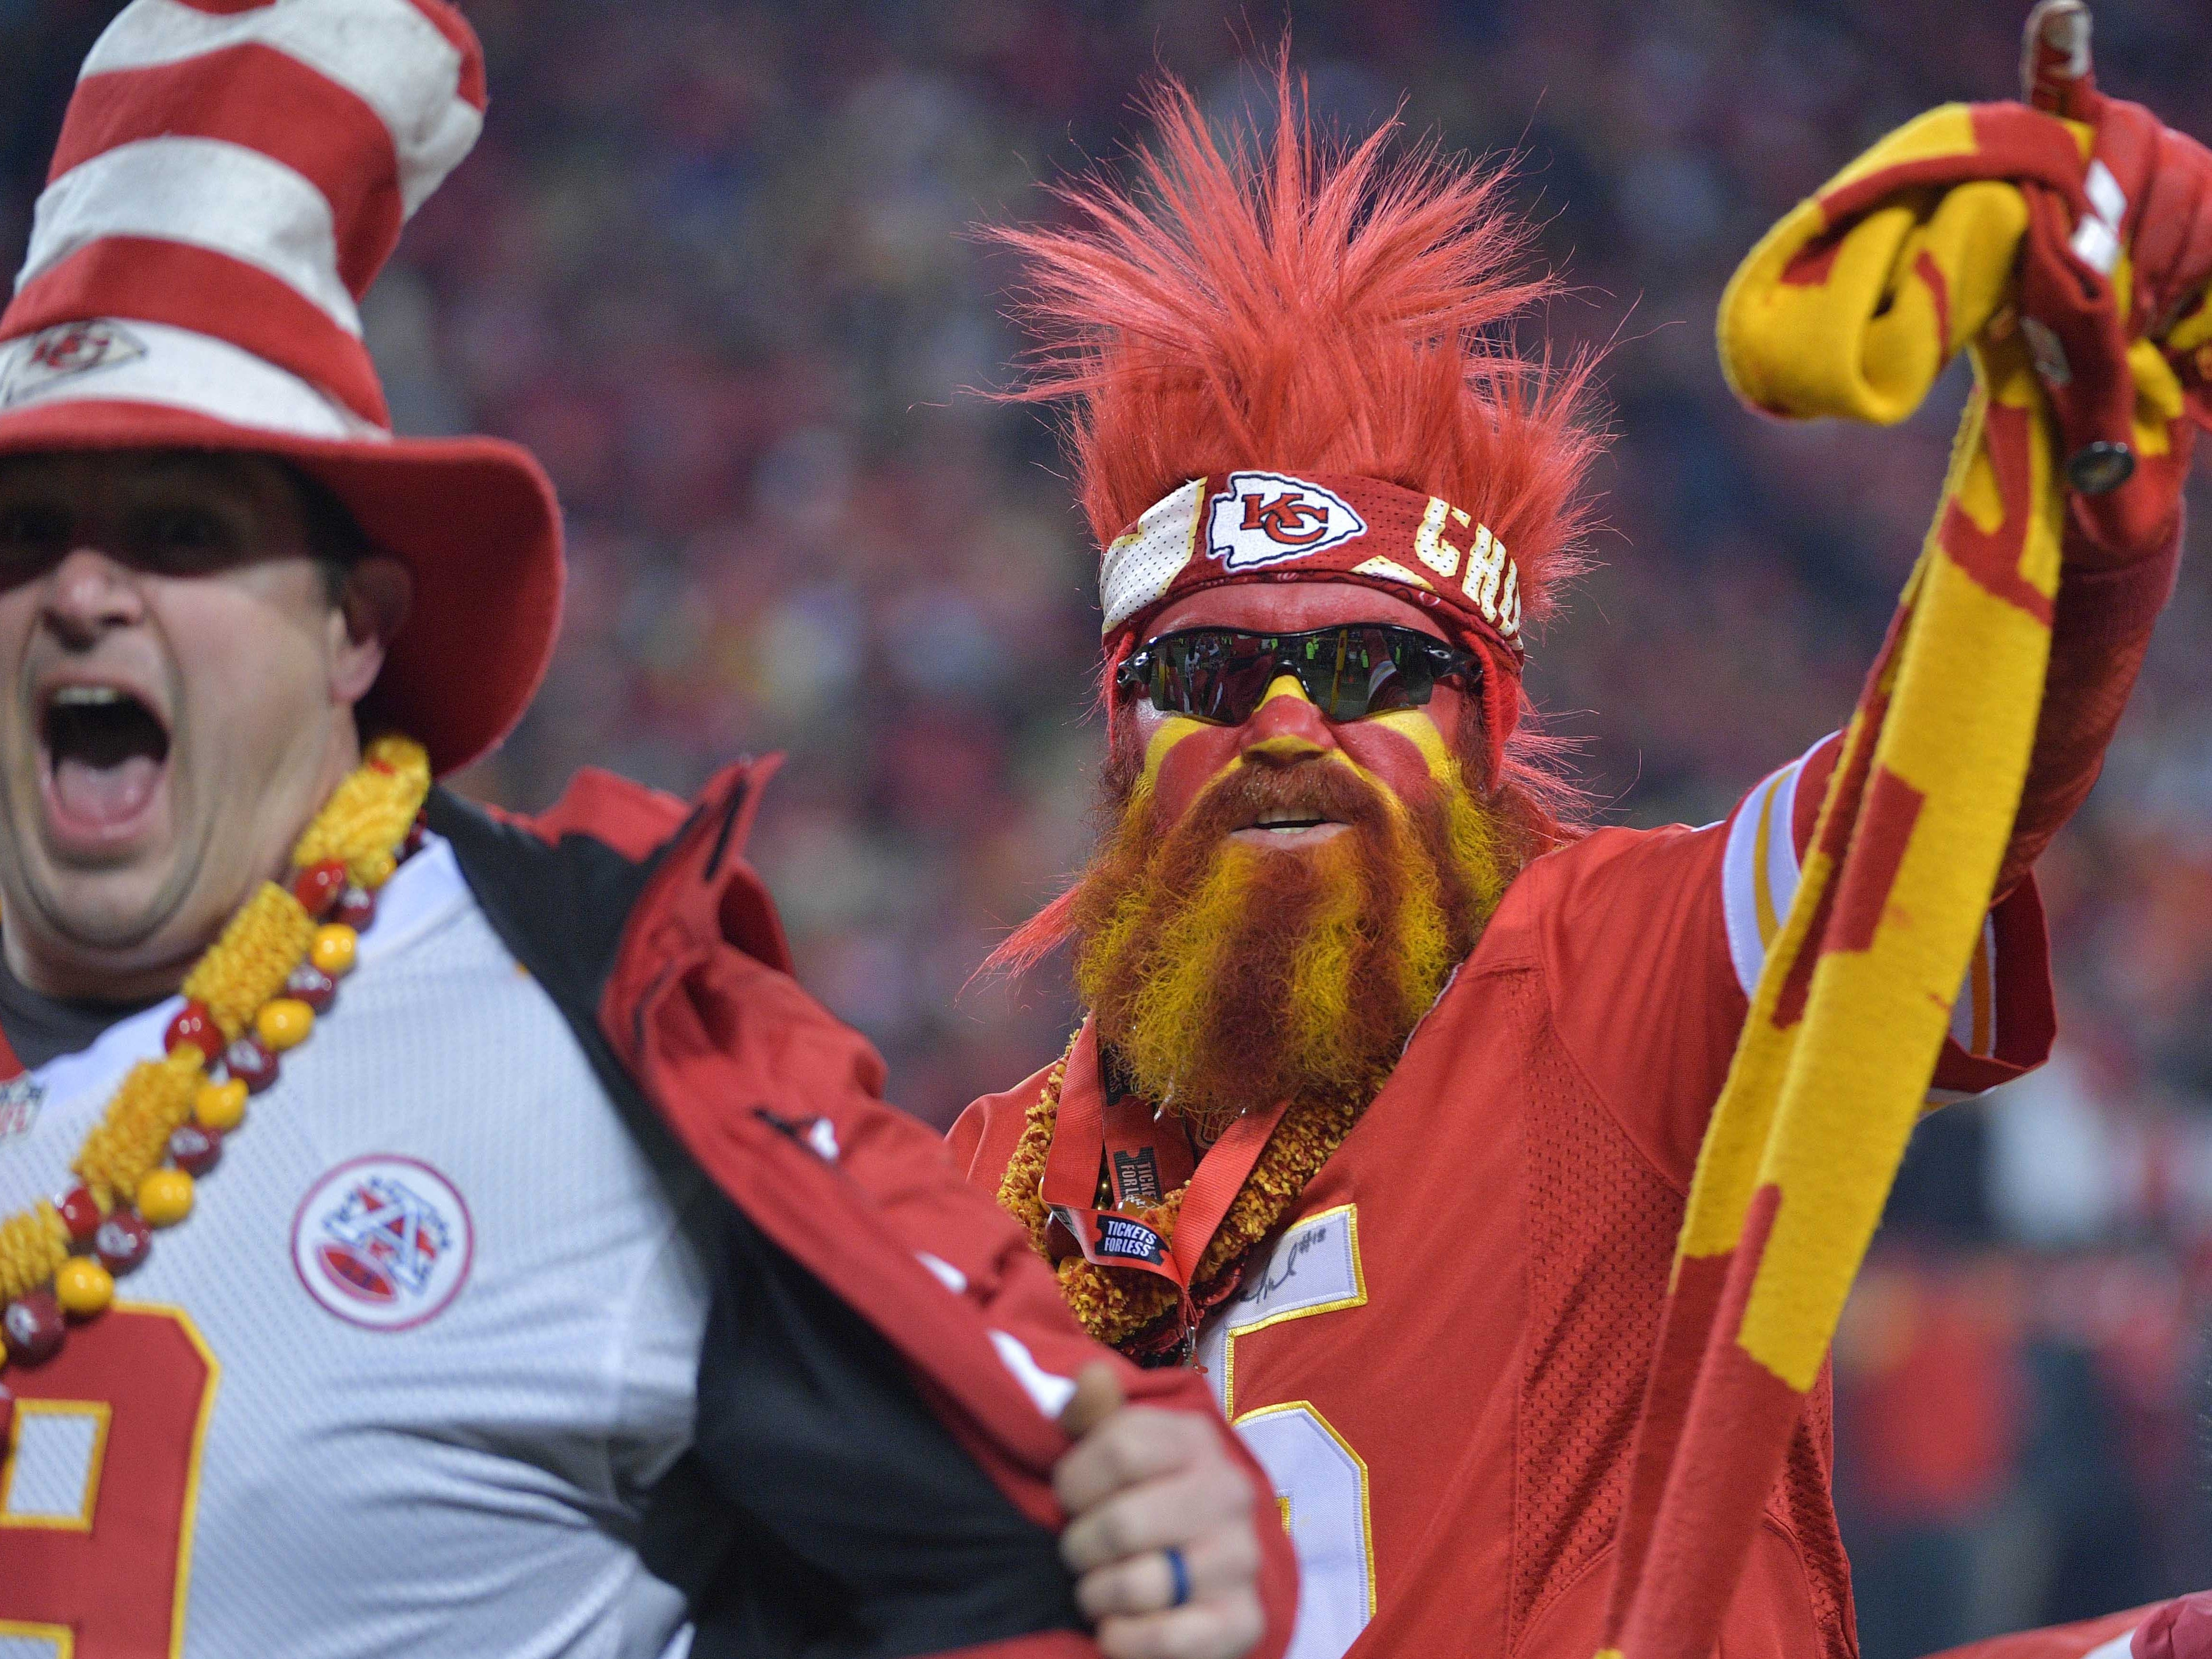 Kansas City Chiefs fans look on during the first quarter of the AFC Championship Game at Arrowhead Stadium.